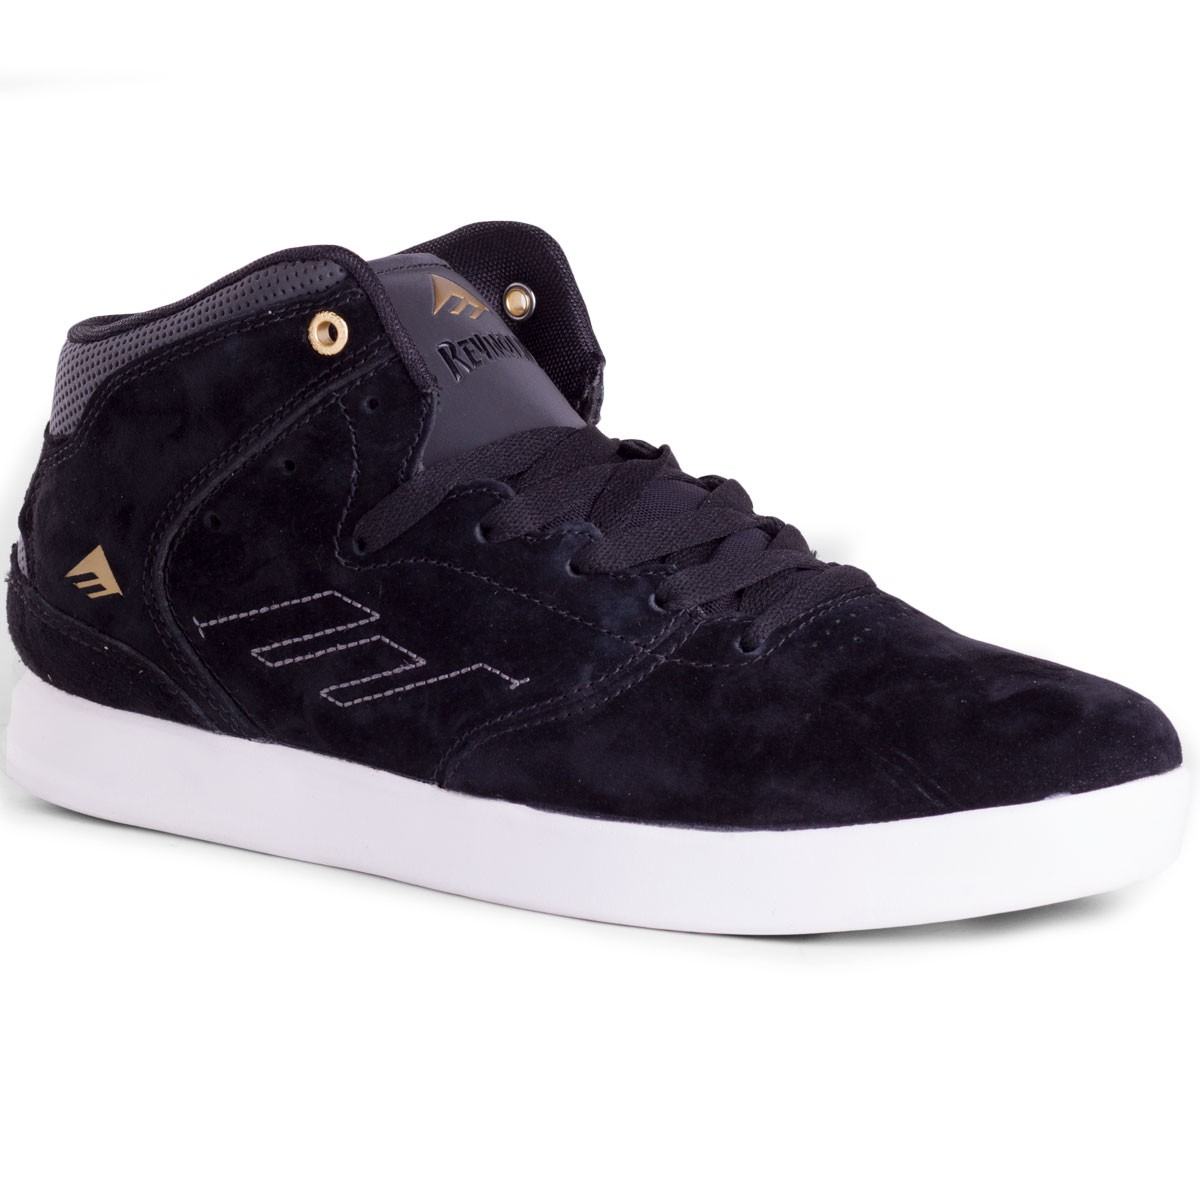 Emerica The Reynolds Shoes - Black / White 13.0